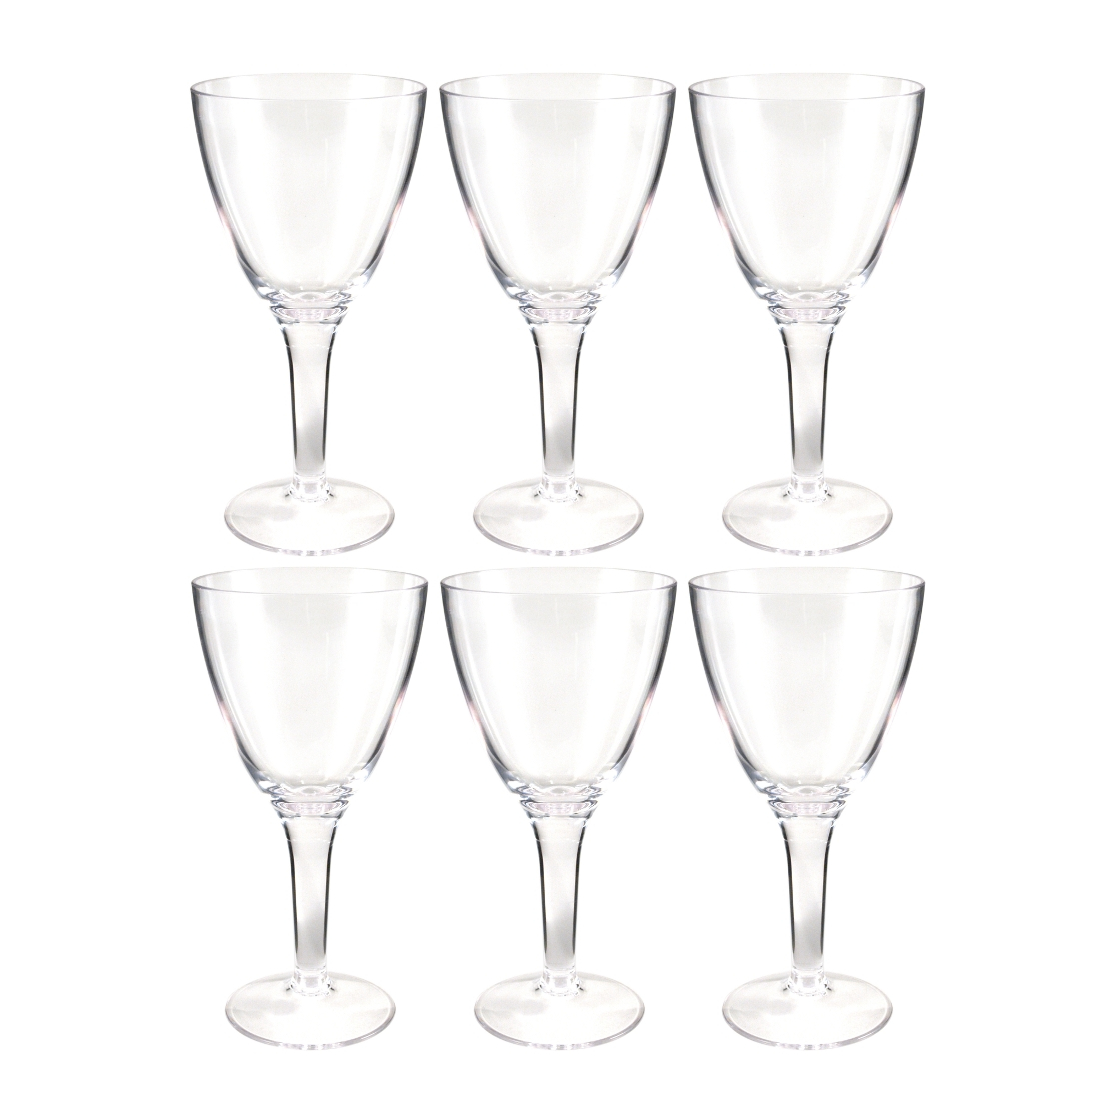 Prodyne Forever Clear Polycarbonate 14 Ounce All Purpose Stemmed Glass, Set of 6